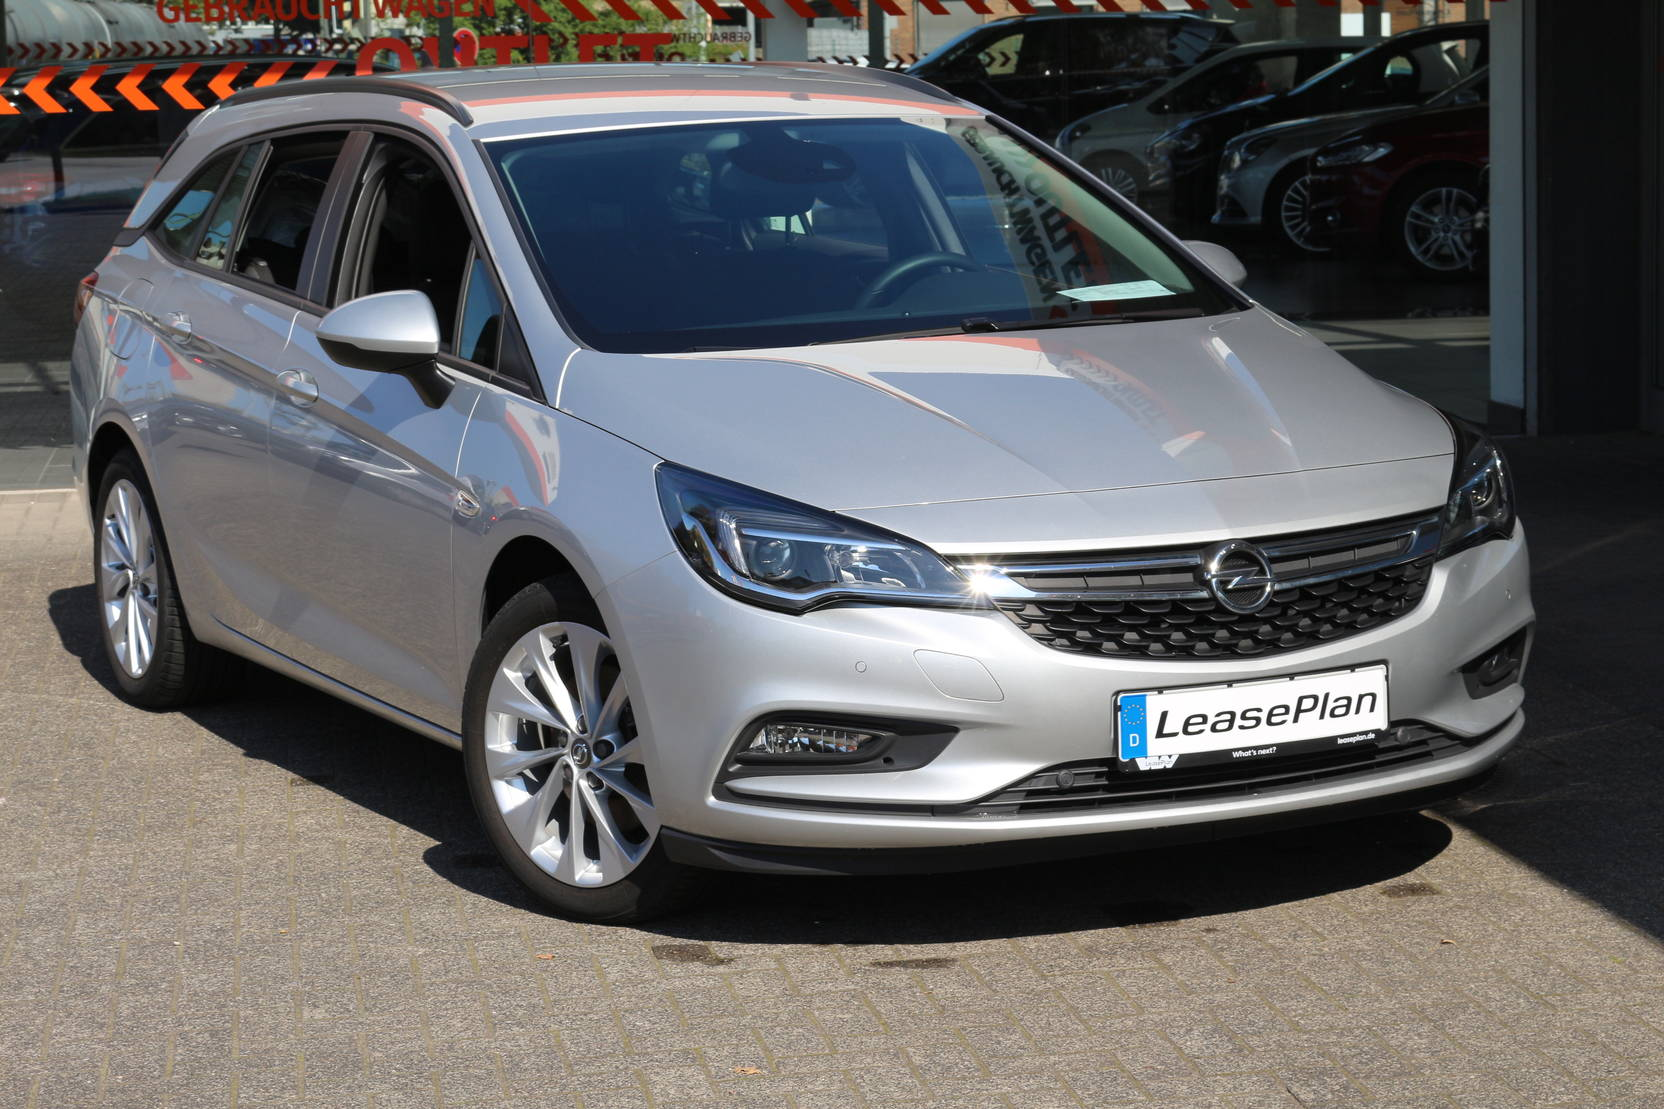 Opel Astra 1.6 D (CDTI) Start/Stop Sports Tourer Edition (625930) detail1